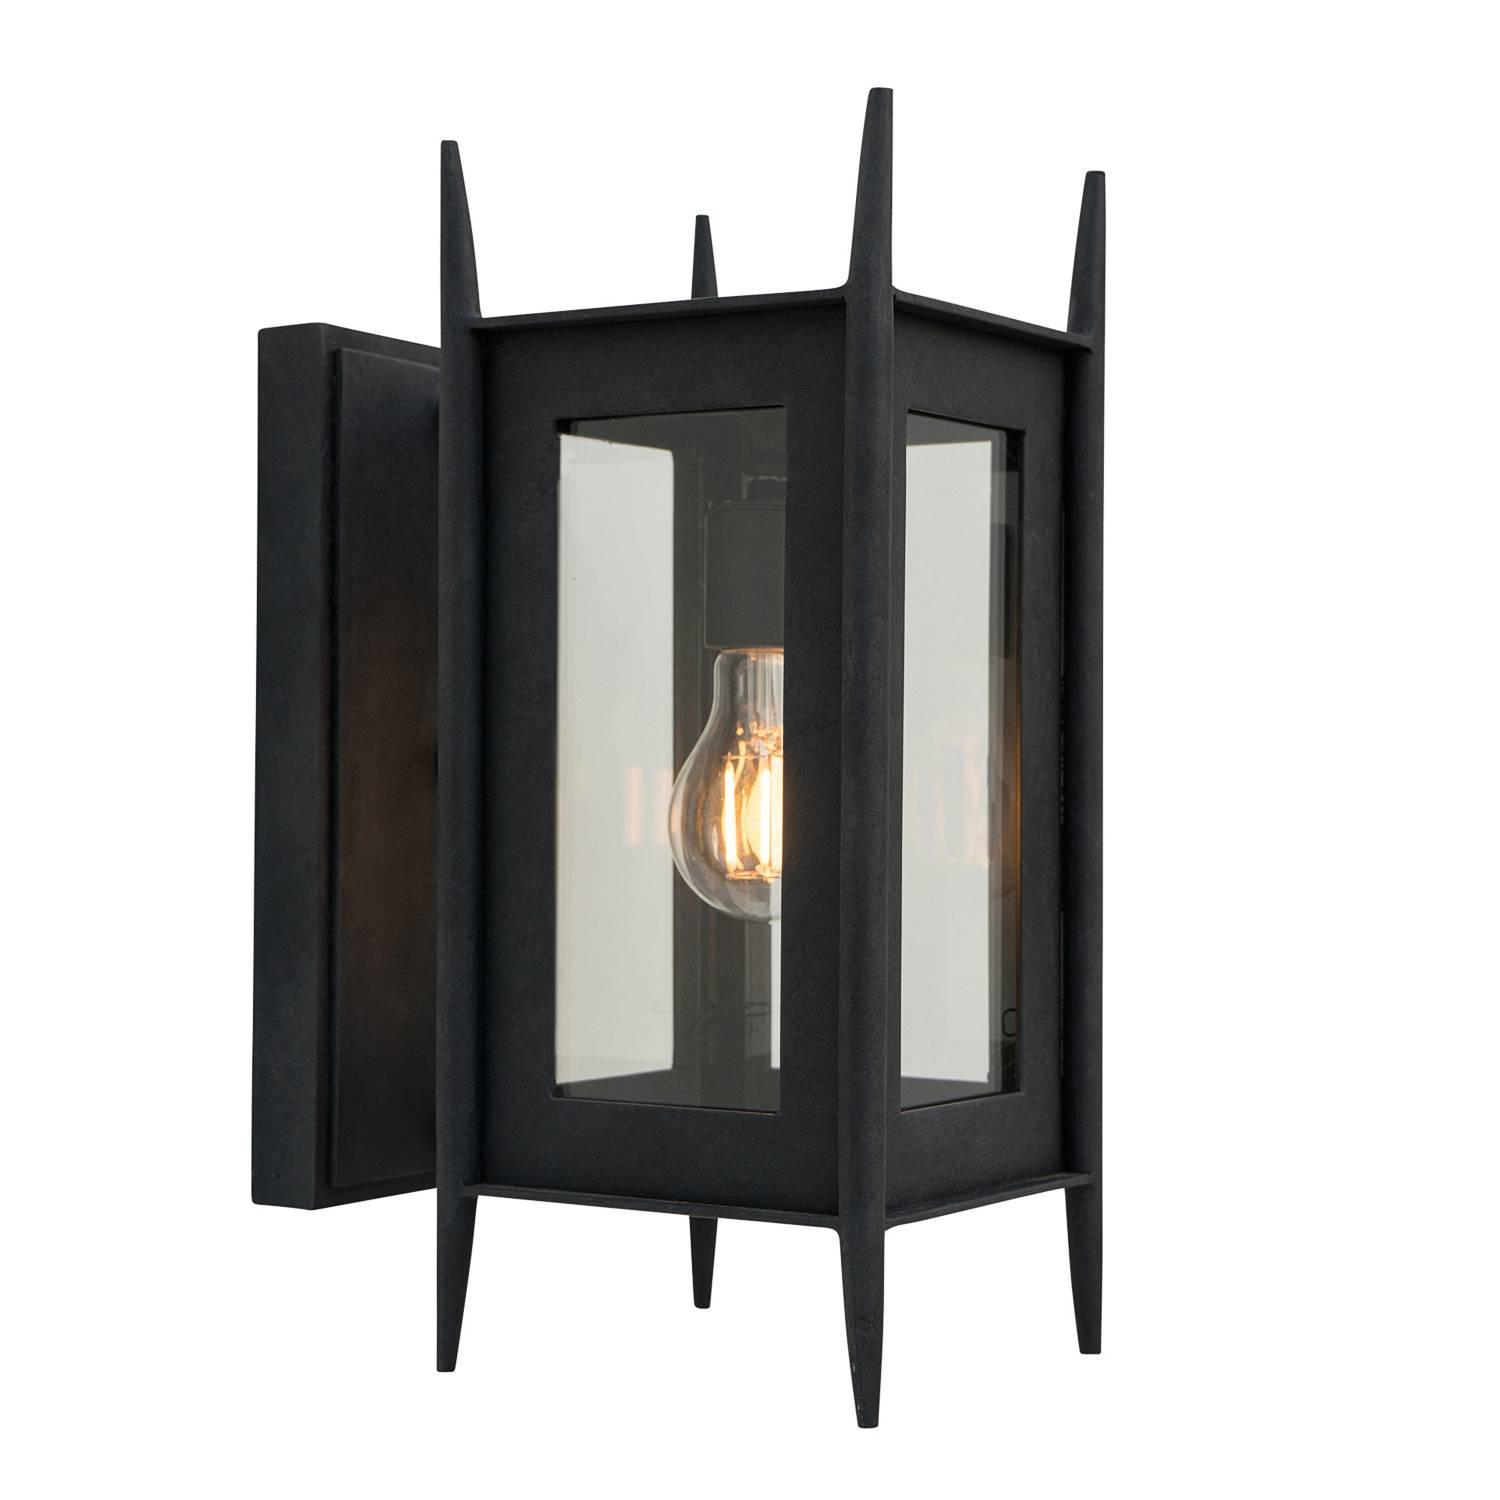 Modern Wrought Iron Exterior Wall Sconce Outdoor Lighting ... on Wrought Iron Sconces Wall Lighting id=18198